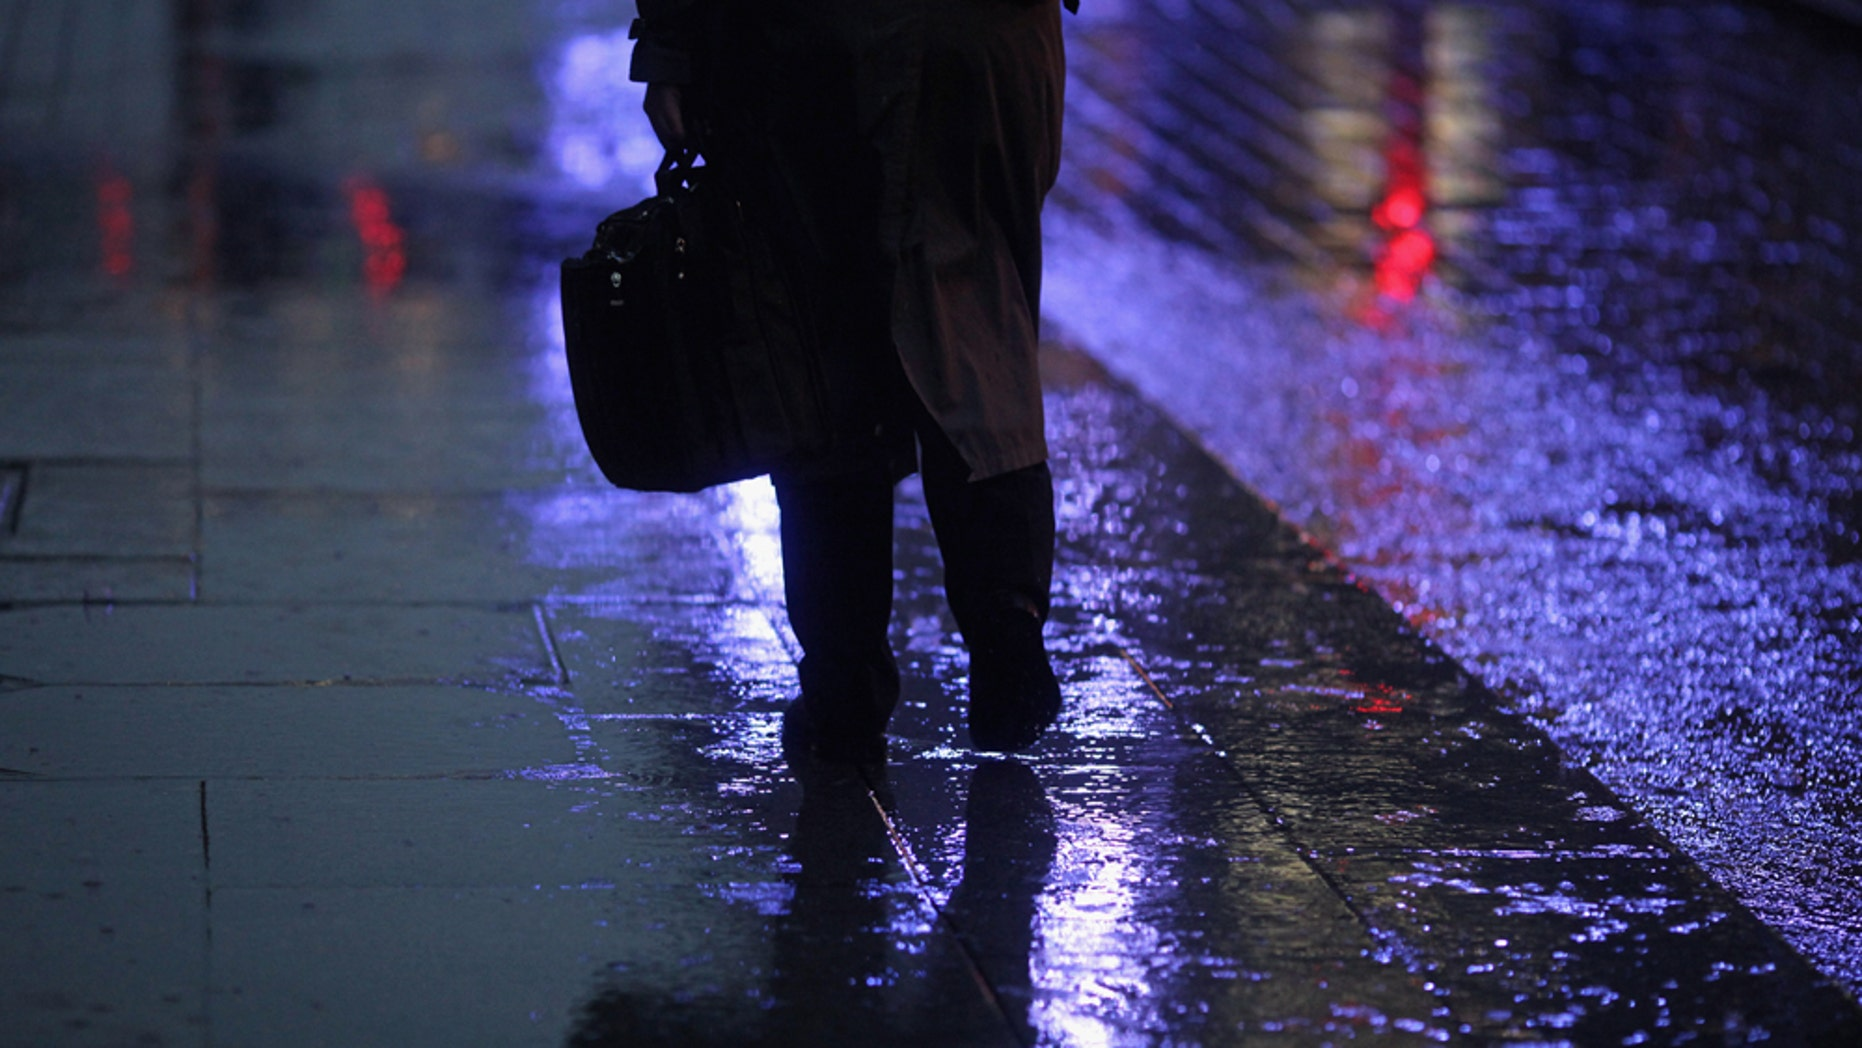 "GLASGOW, SCOTLAND - NOVEMBER 01: A man walks through a rain shower in Buchanan Street on November 1, 2010 in Glasgow, Scotland. According to a poll released today, 66% of Brits will feel depressed due to it being ""the most miserable day of the year"". The changing of UK clocks, falling temperatures and impending government cuts factor into the research, which was carried out by the Canary Islands Tourist Board. Furthermore, Glasgow residents top the poll, followed by the people of Newcastle, Sheffield, Cardiff and London.  (Photo by Jeff J Mitchell/Getty Images)"